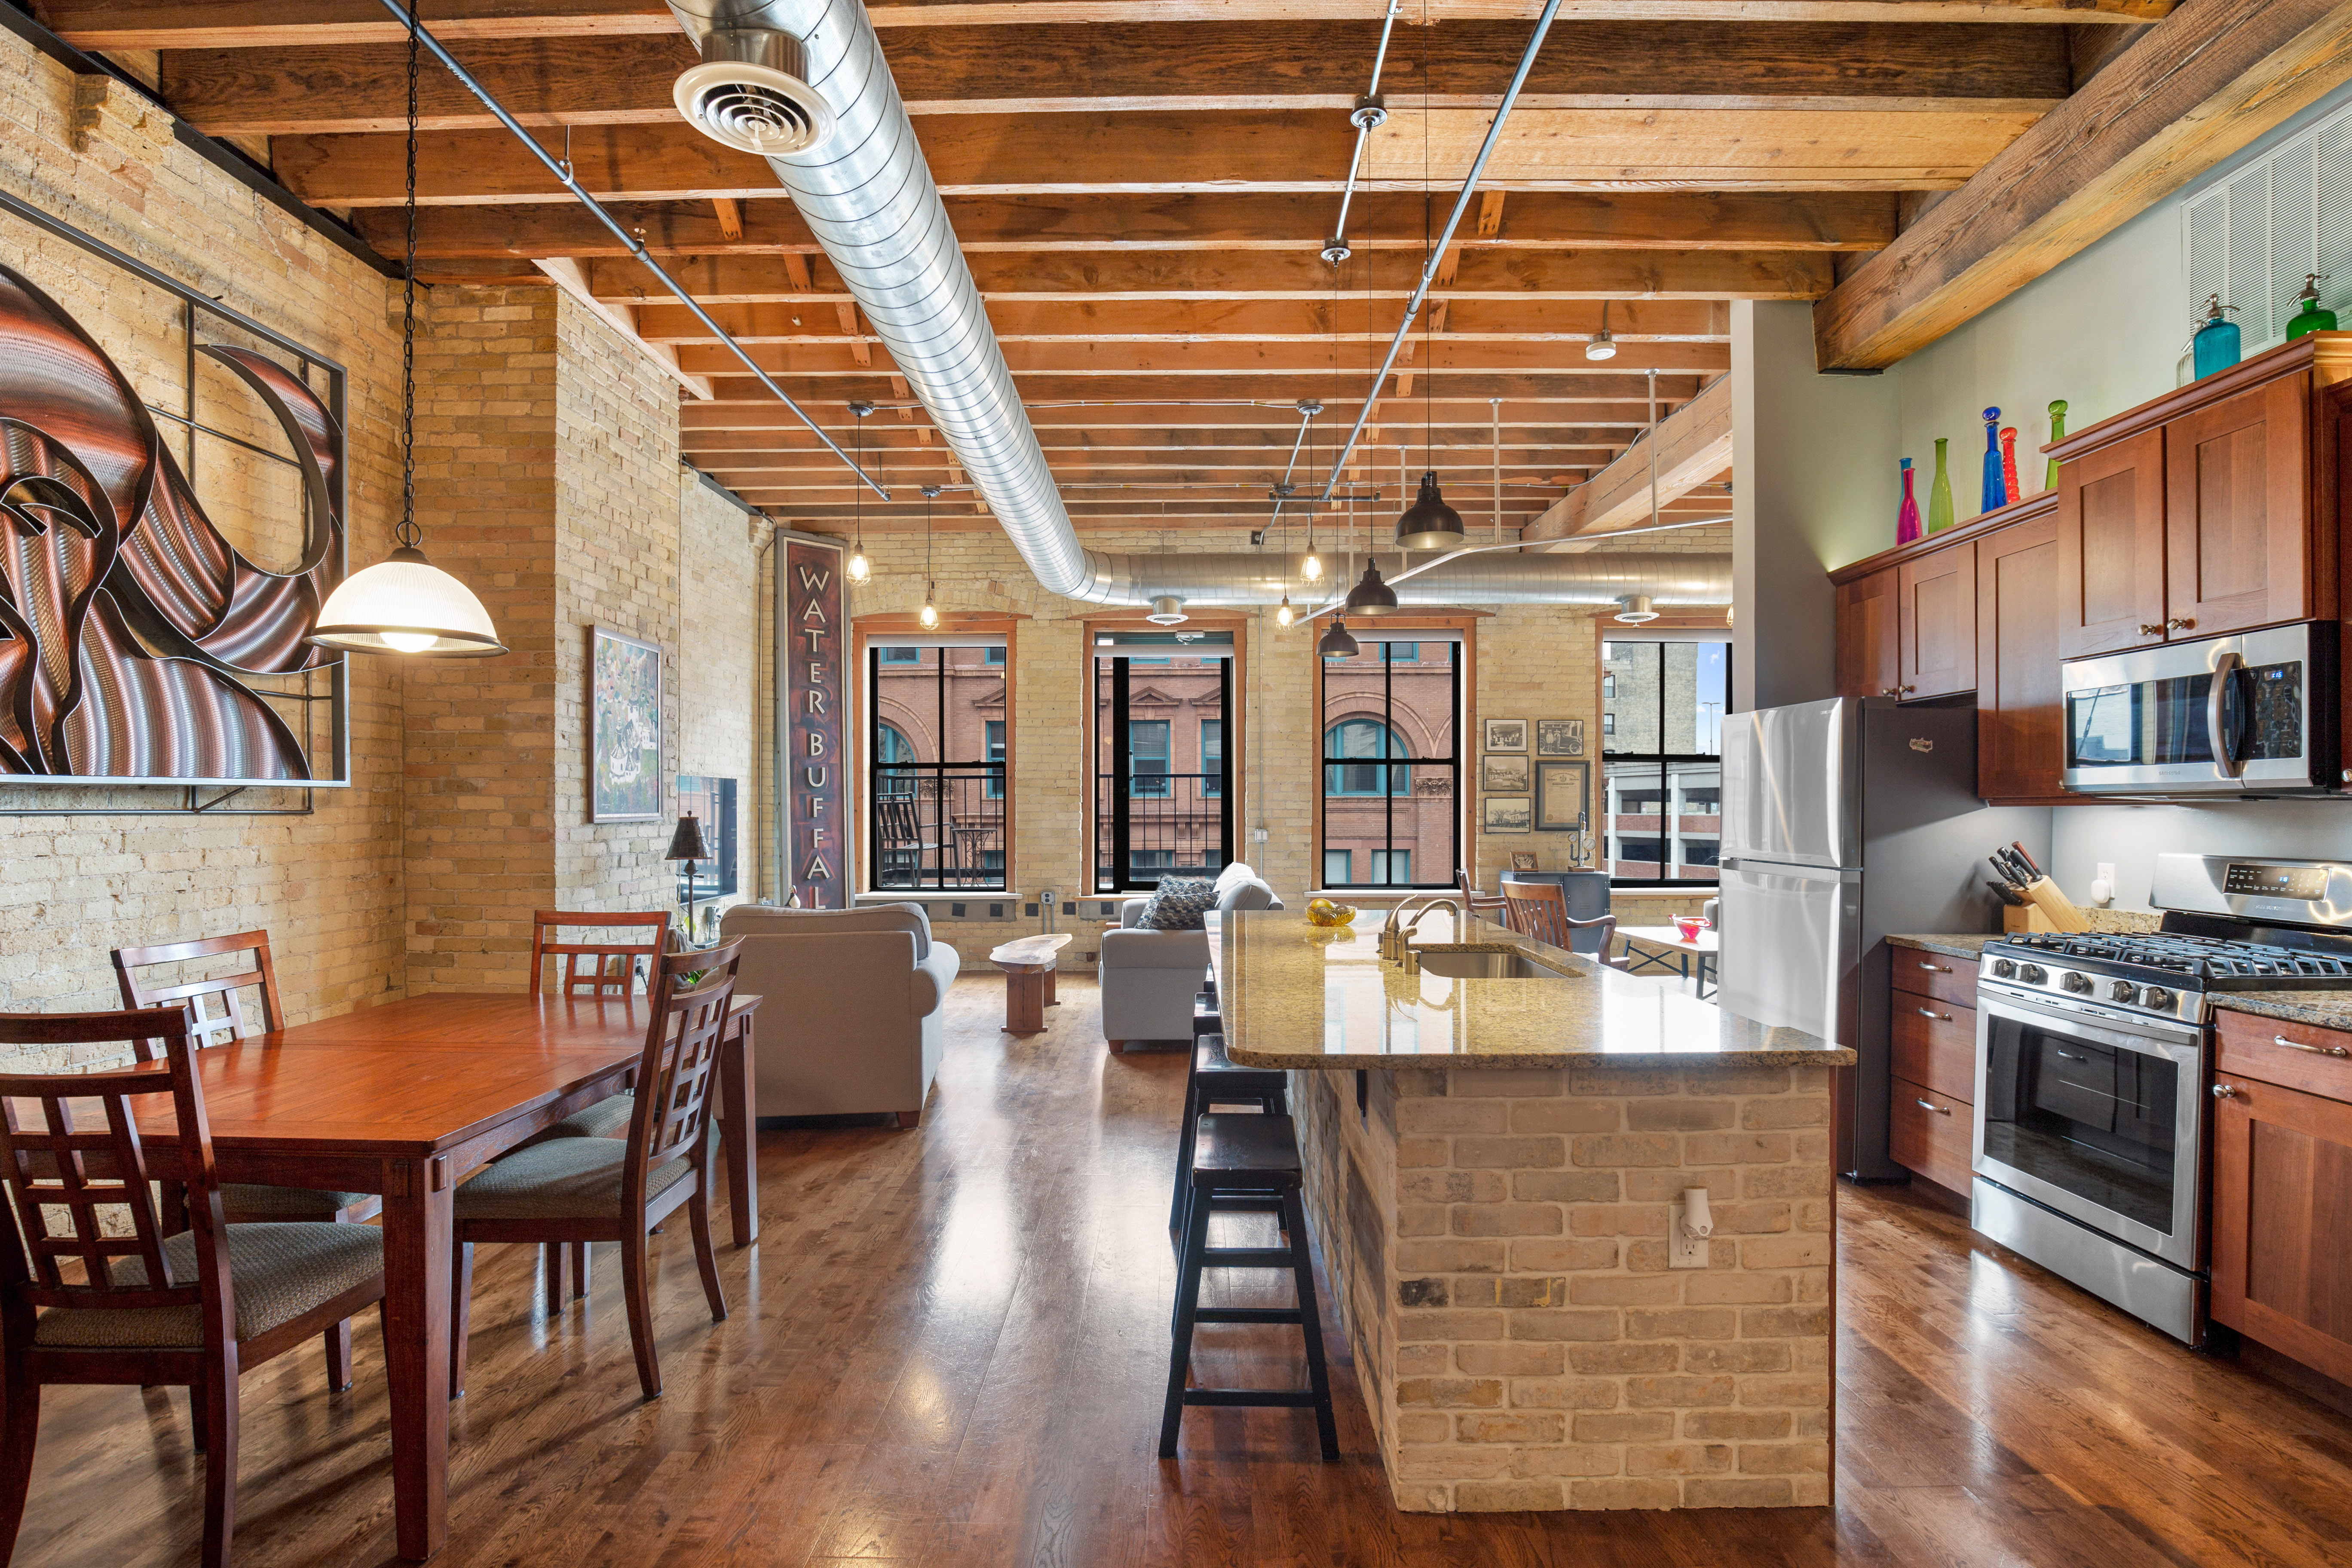 205 N. Water St., #406. Photo courtesy of Corley Real Estate.